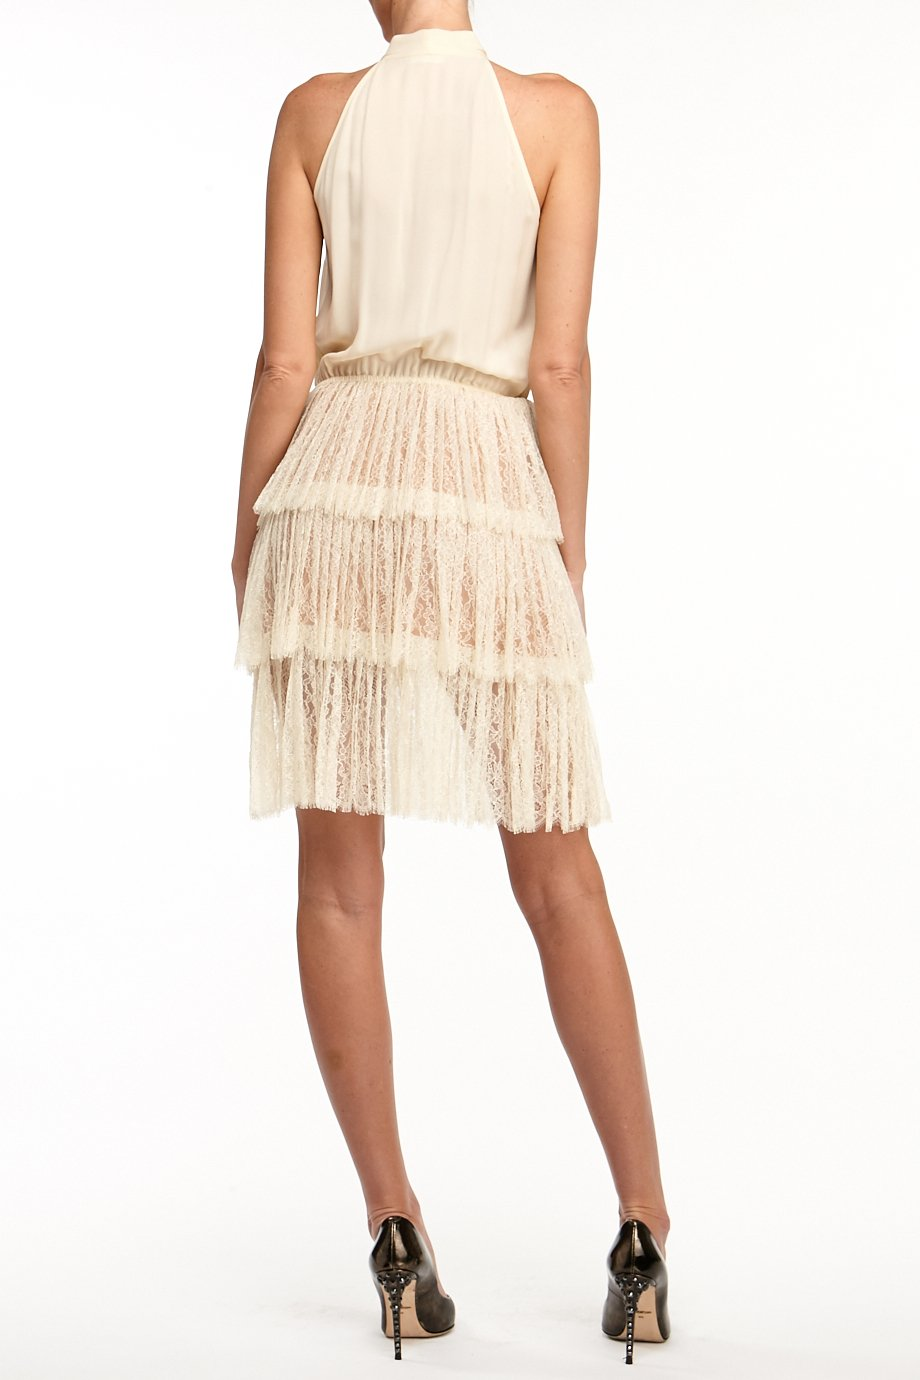 Michael Kors Ivory Halter Bow Tie Ruffle Skirt Dress